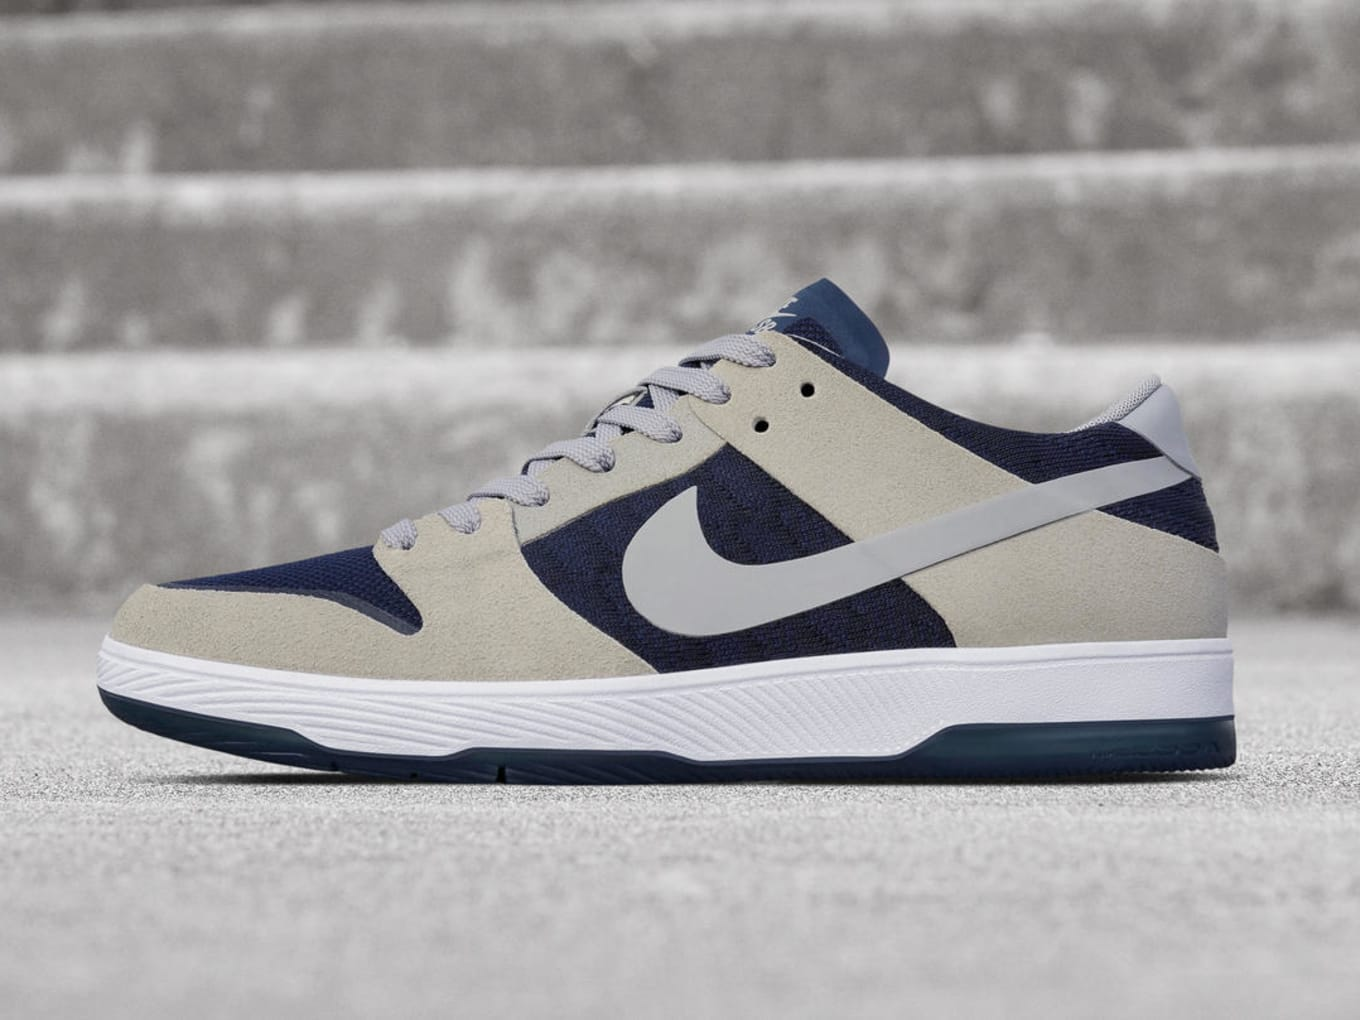 size 40 aefc1 4f699 Introducing the Nike SB Zoom Dunk Low Elite.